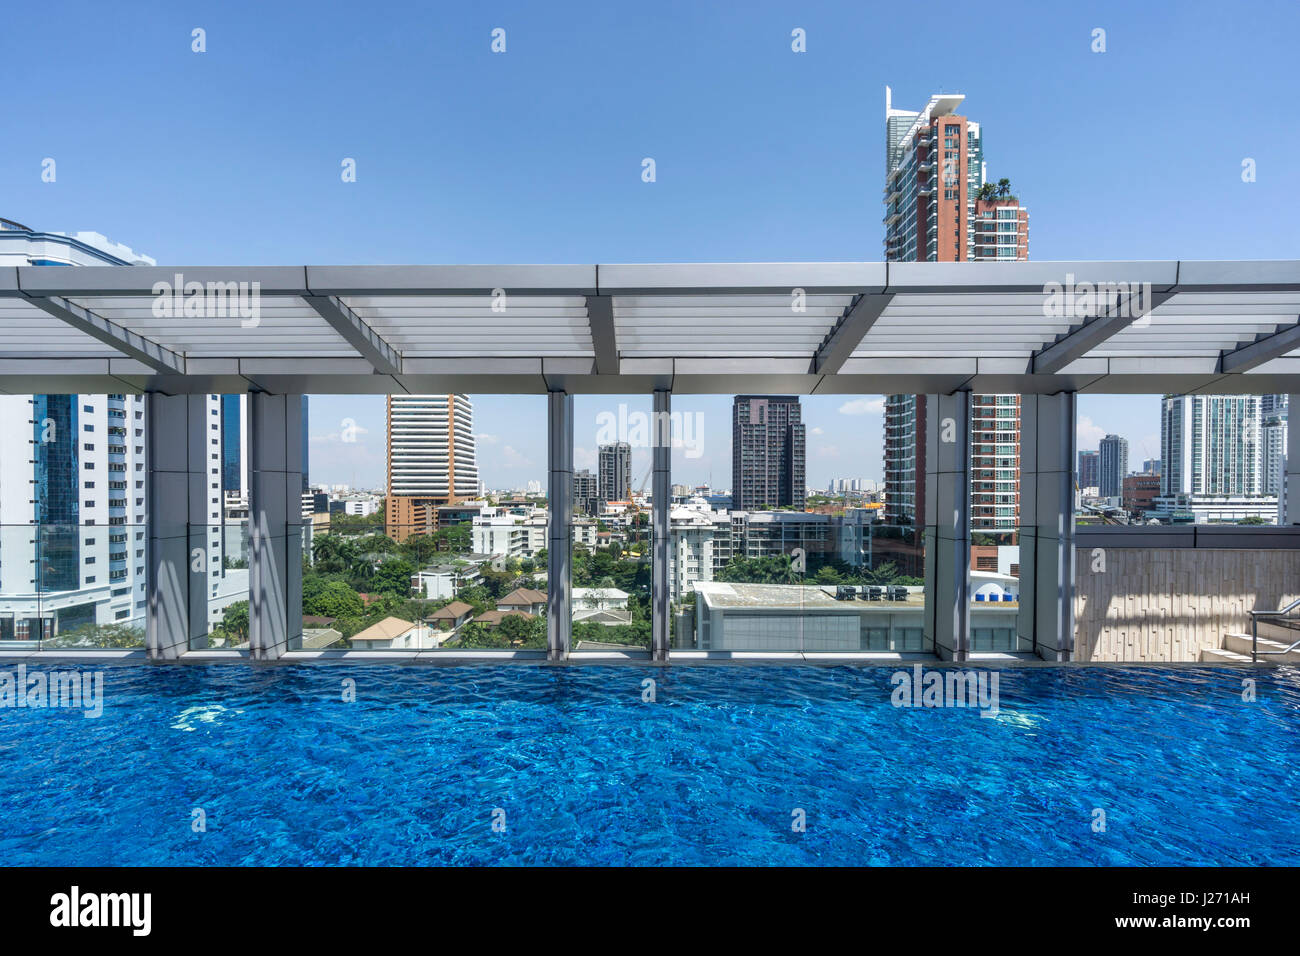 Marriot Hotel Sukhumvit, Pool, Skyline,  Bangkok, Thailand - Stock Image